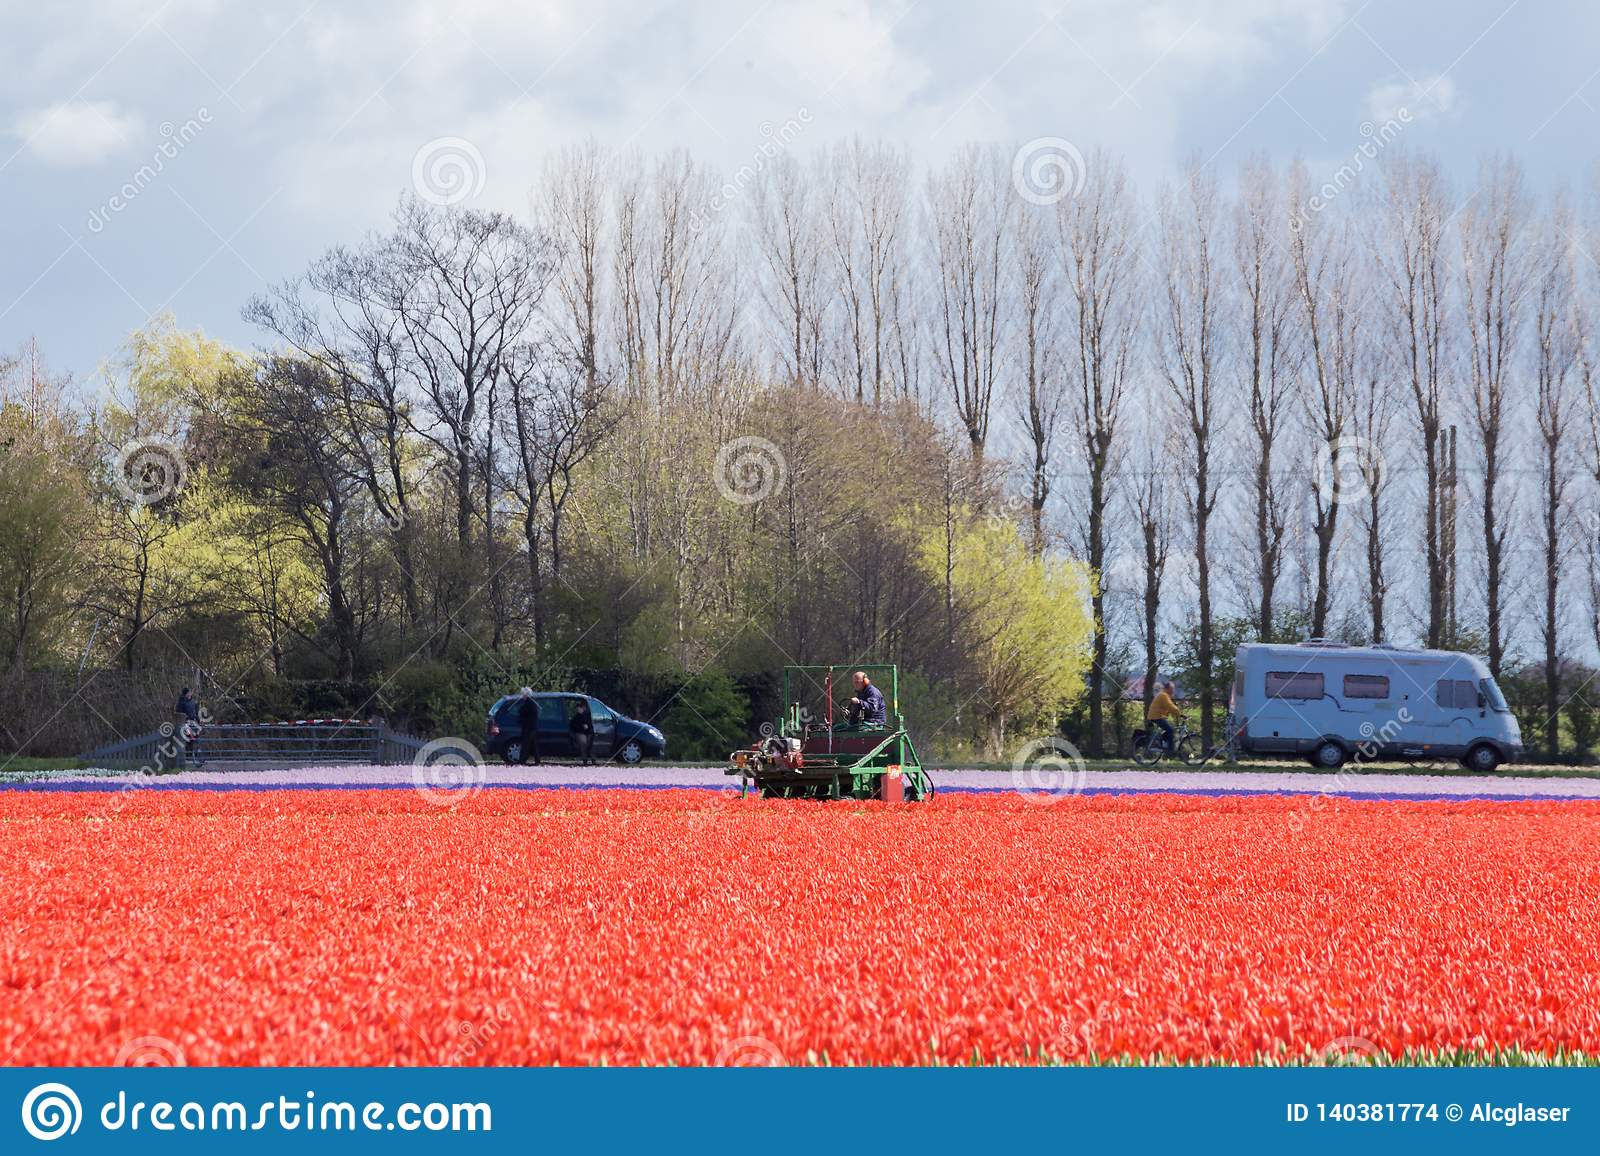 Red tulip fields against a background of tall trees and people visiting them in the Dutch springtime